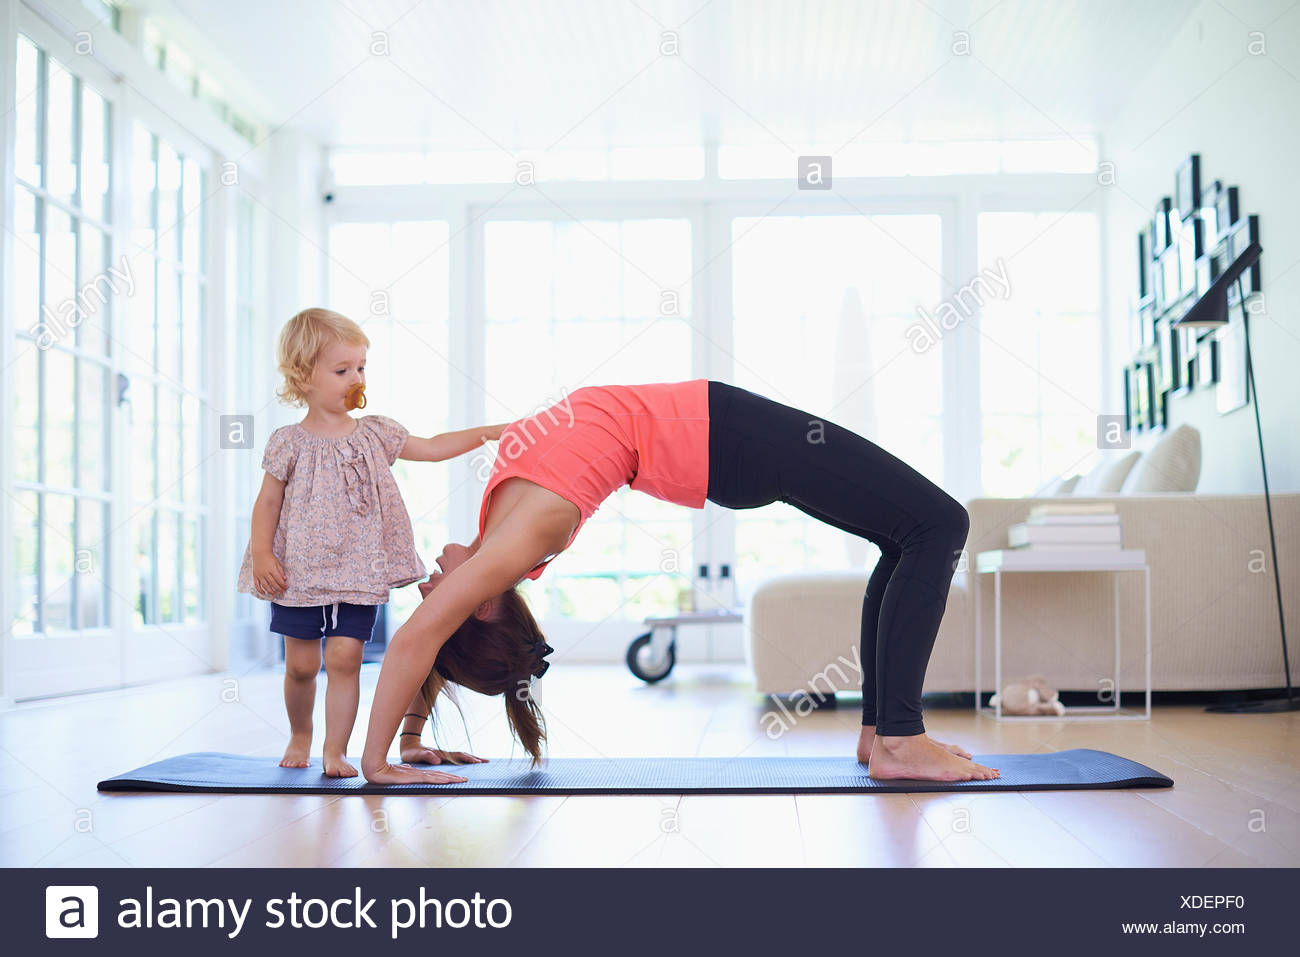 Mid adult mother pratiquant le yoga avec bébé fille curieuse Photo Stock